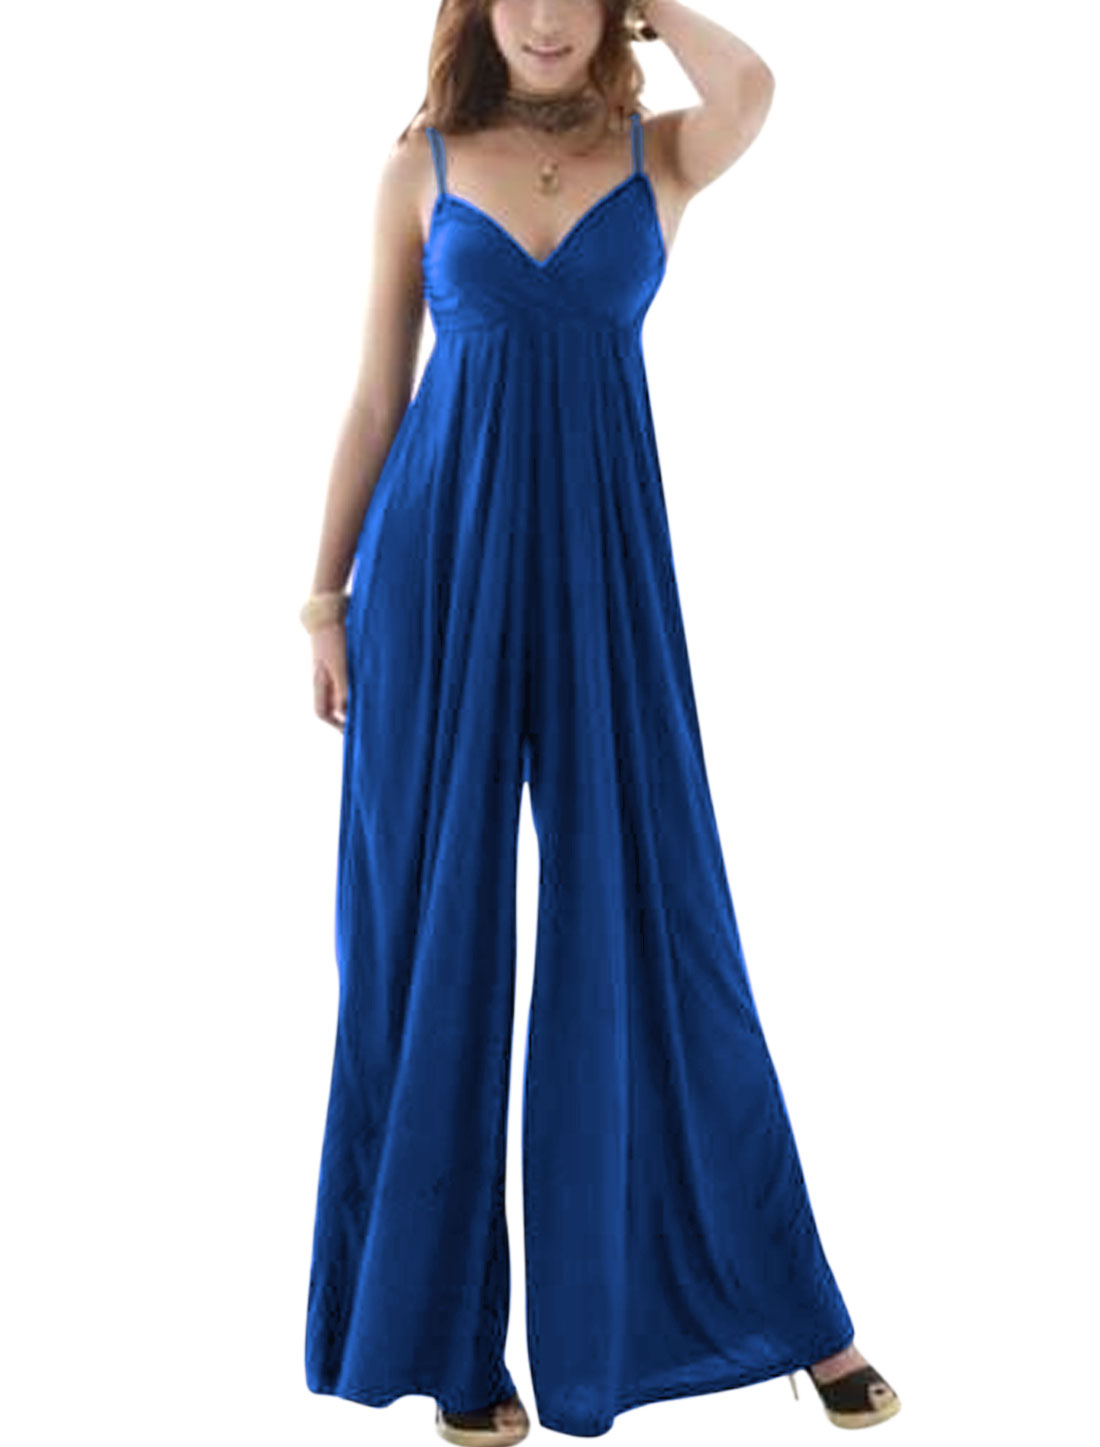 Ladies Padded Bust Backless Wide Leg Elastic Waist Jumpsuits Royal Blue XS